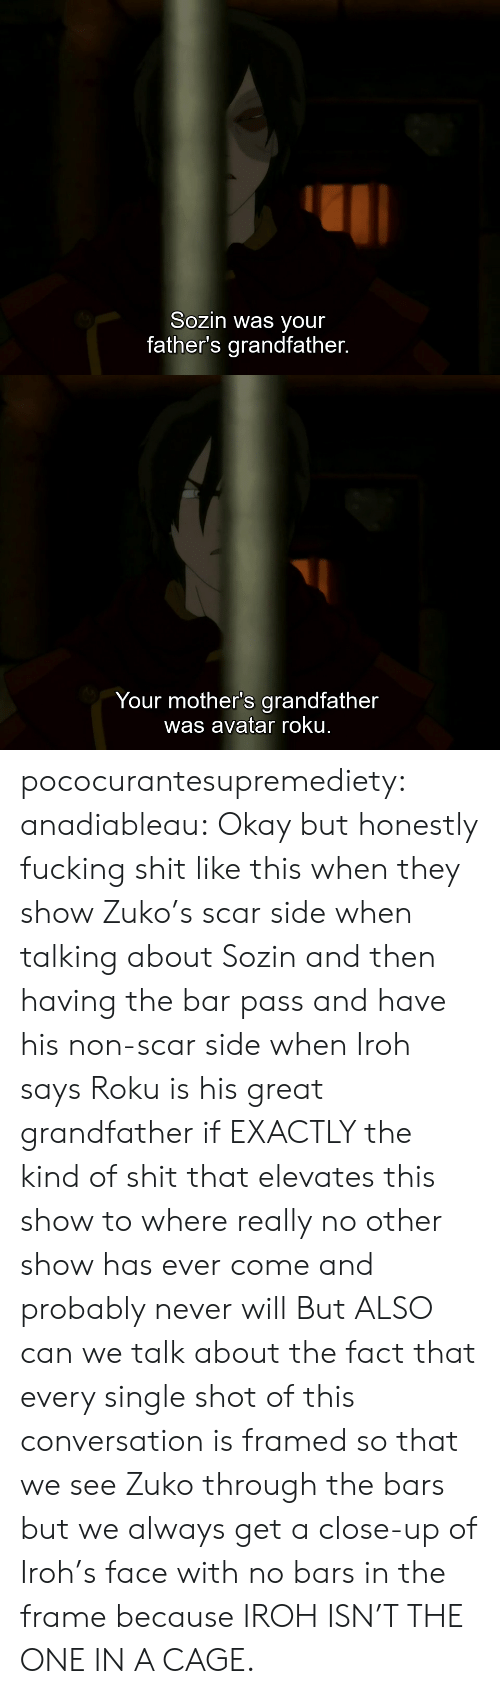 Bars: Sozin was your  father's grandfather.   Your mother's grandfather  was avatar roku. pococurantesupremediety: anadiableau: Okay but honestly fucking shit like this when they show Zuko's scar side when talking about Sozin and then having the bar pass and have his non-scar side when Iroh says Roku is his great grandfather if EXACTLY the kind of shit that elevates this show to where really no other show has ever come and probably never will But ALSO can we talk about the fact that every single shot of this conversation is framed so that we see Zuko through the bars but we always get a close-up of Iroh's face with no bars in the frame because IROH ISN'T THE ONE IN A CAGE.